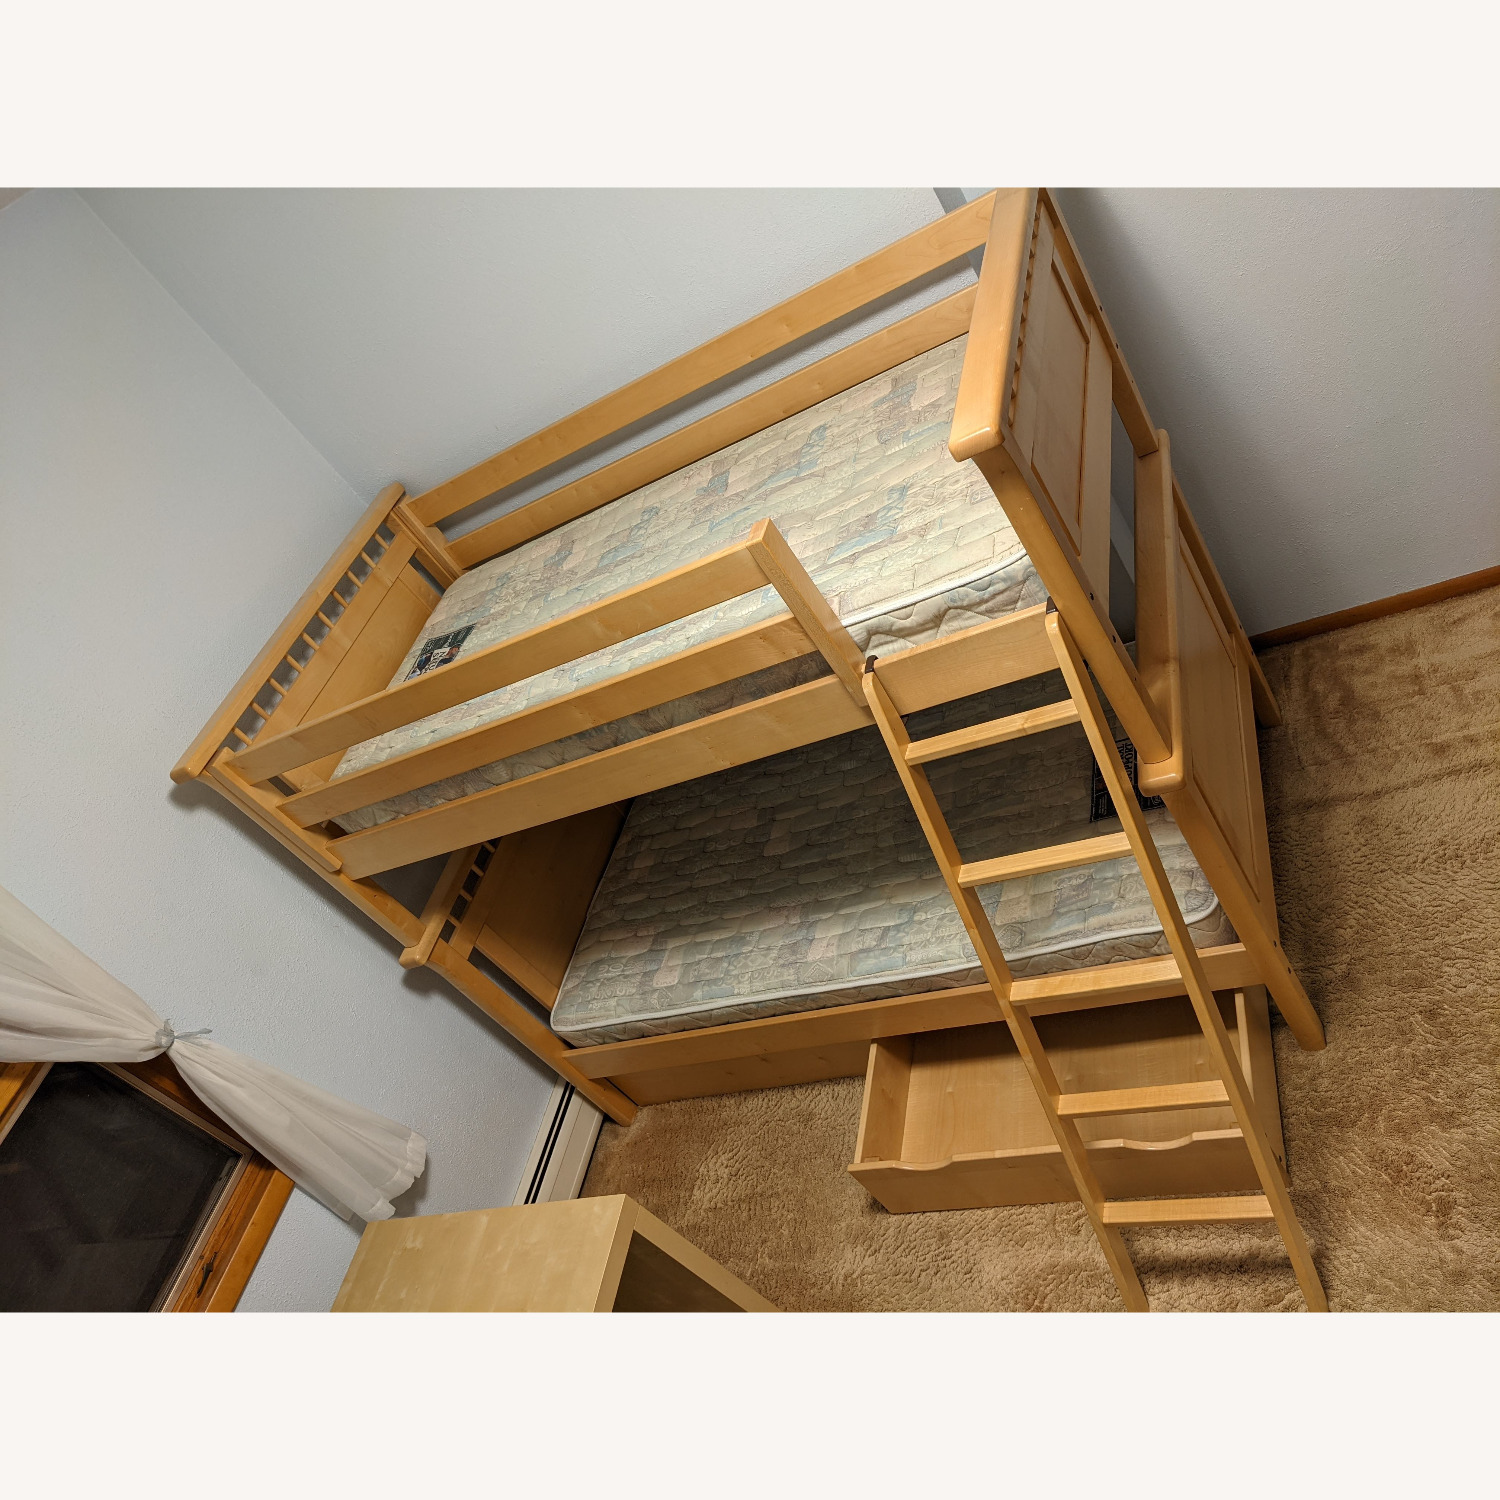 Solid Wood Bunk Beds w/ Under Bed Storage Drawers - image-4